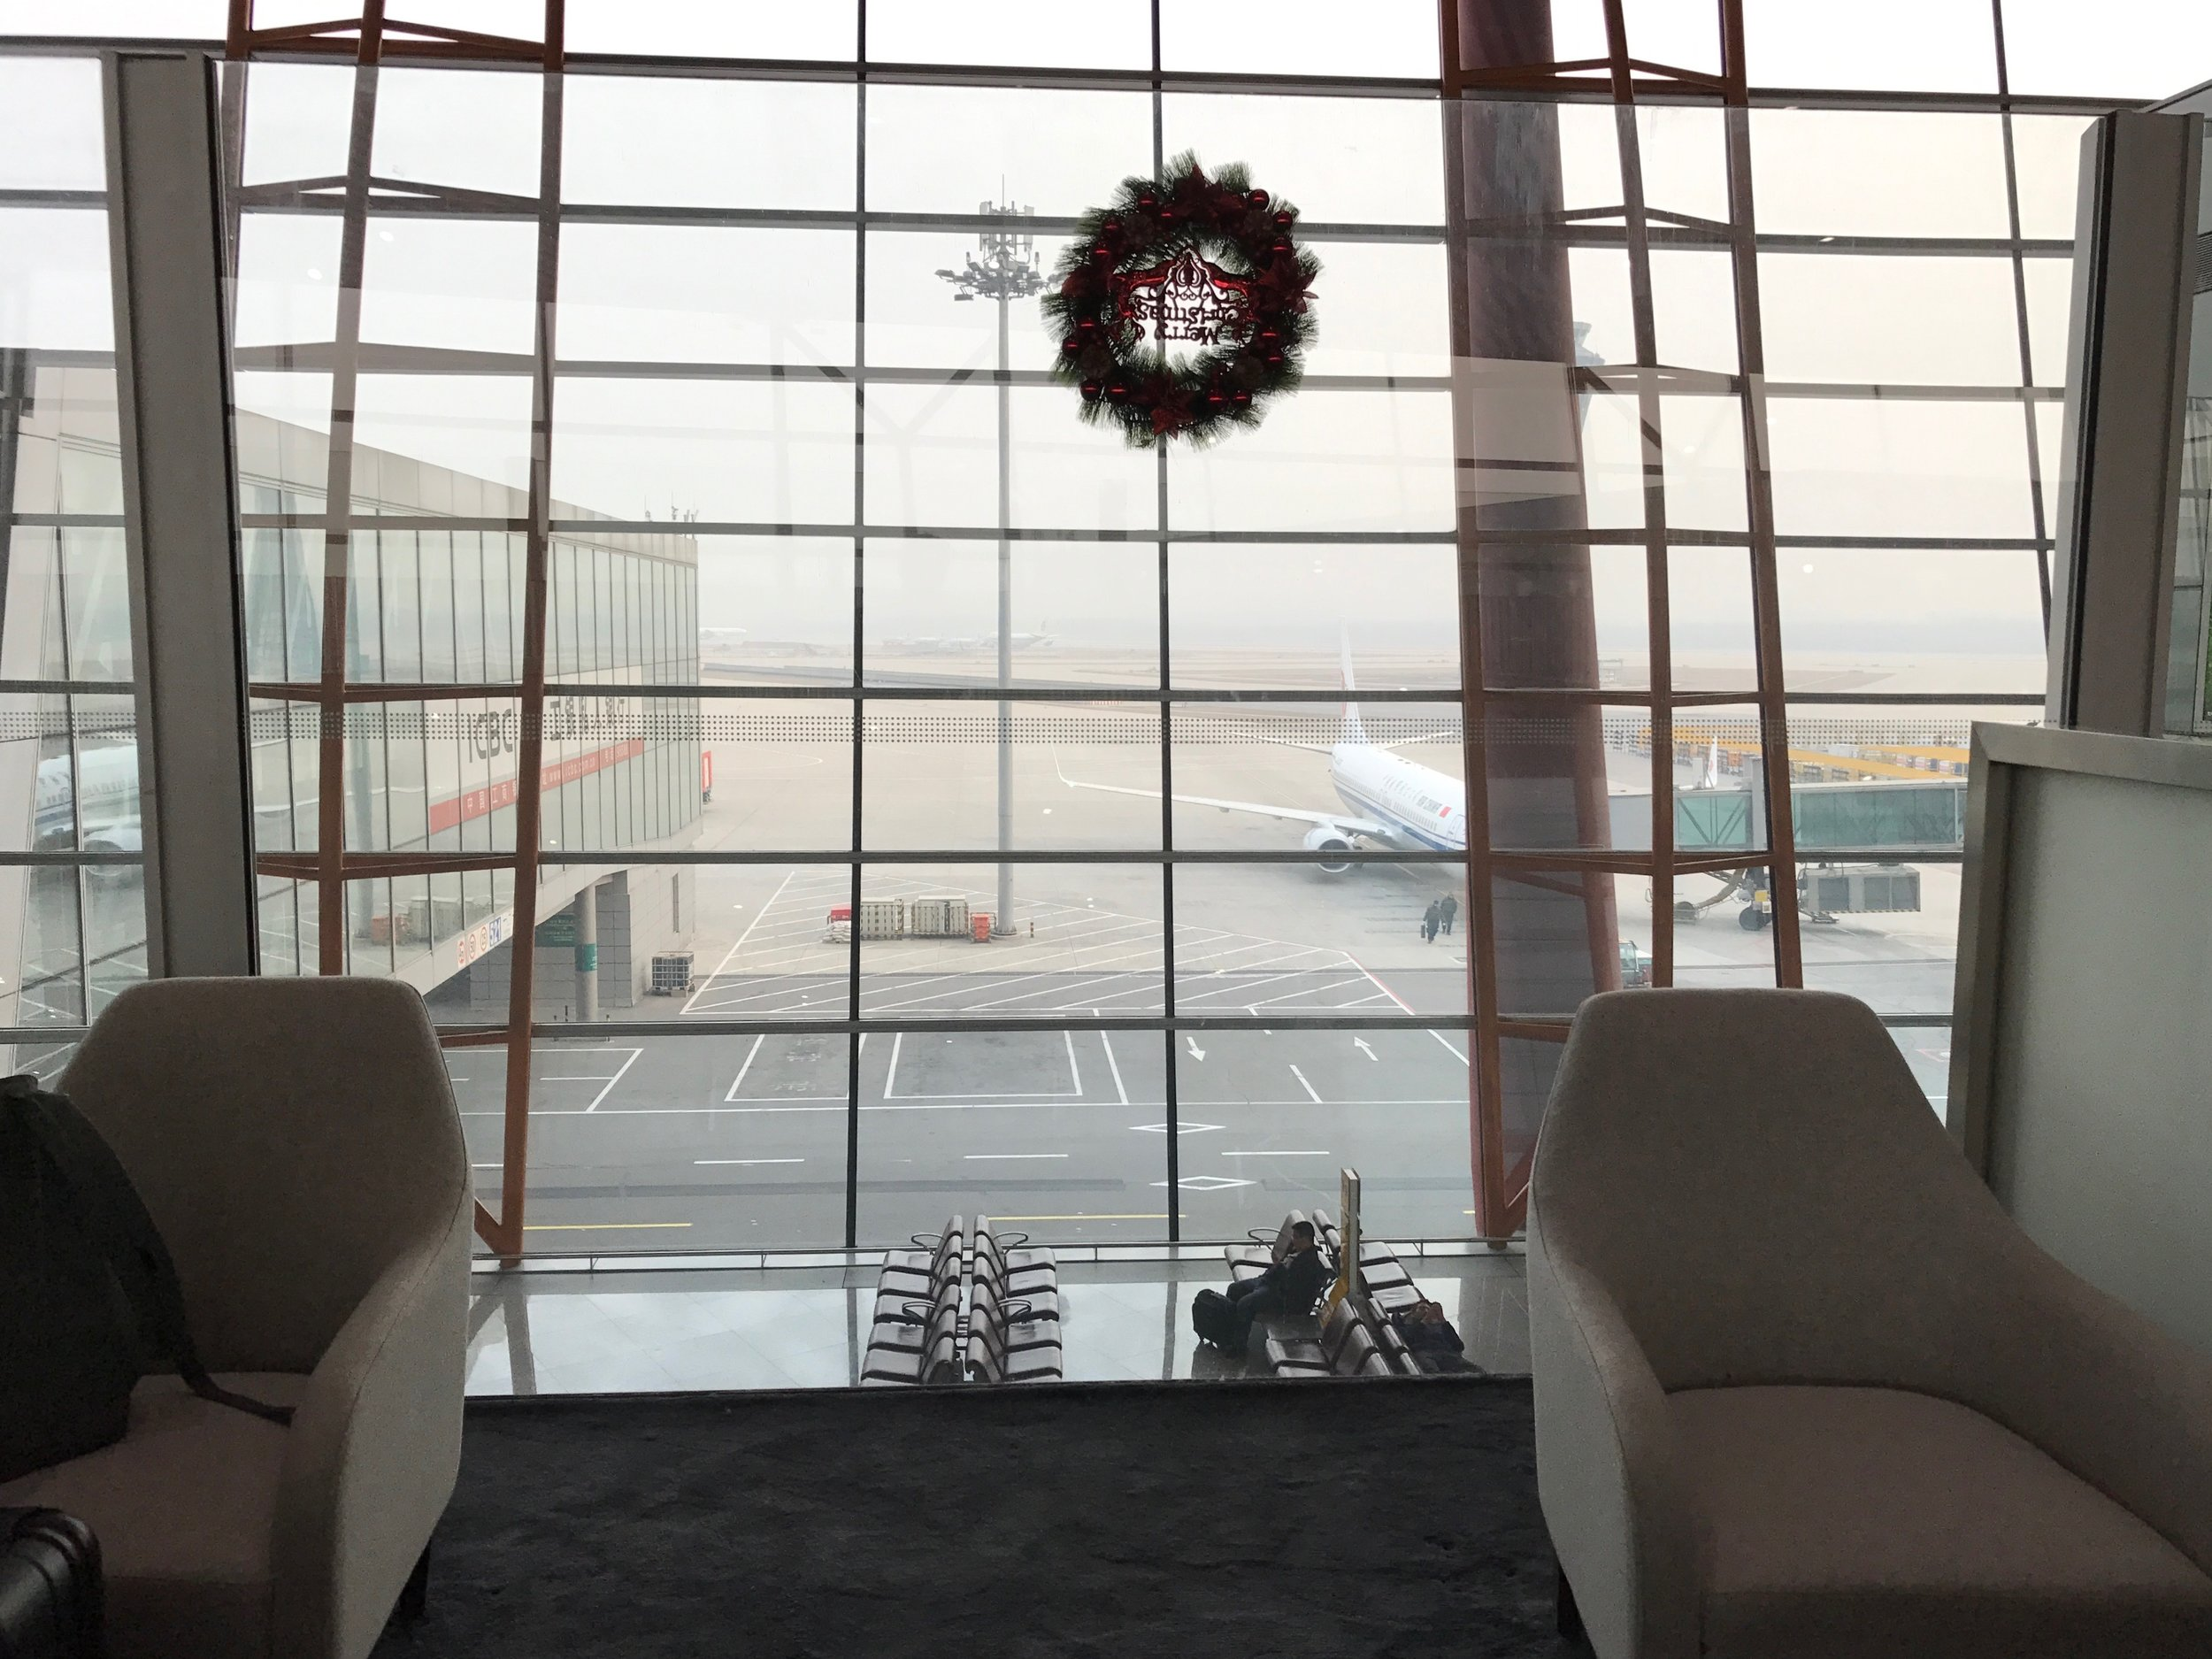 Tarmac view from Cathay Pacific Lounge at Beijing Airport (PEK) T3E